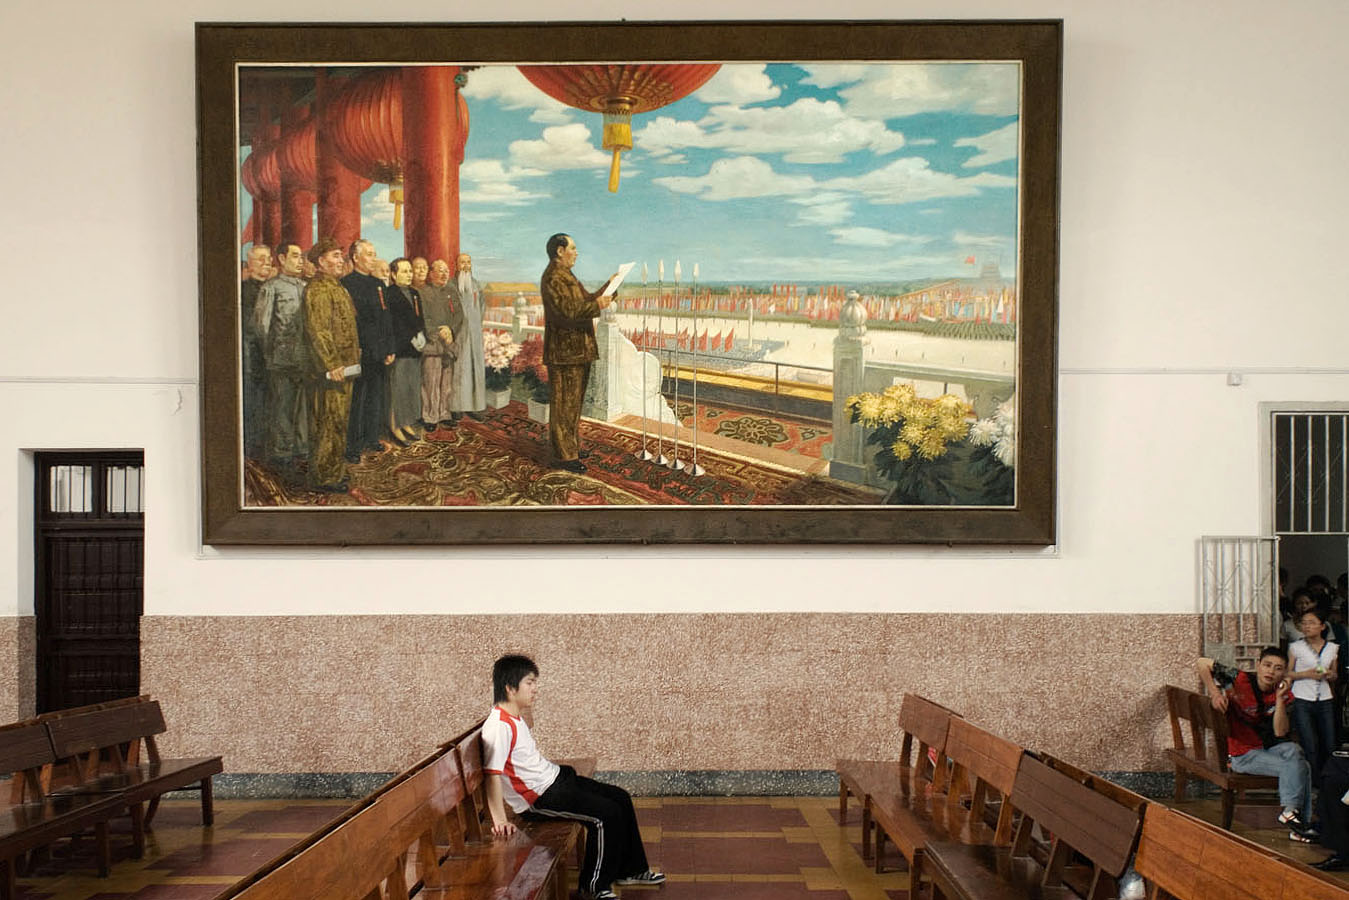 In the waiting room of Shaoshan (bithplace of Mao)railway station a huge painting showing Mao Tse Tung atTian An Men announcing the creation of The People's Republic of China on October 1st 1949.